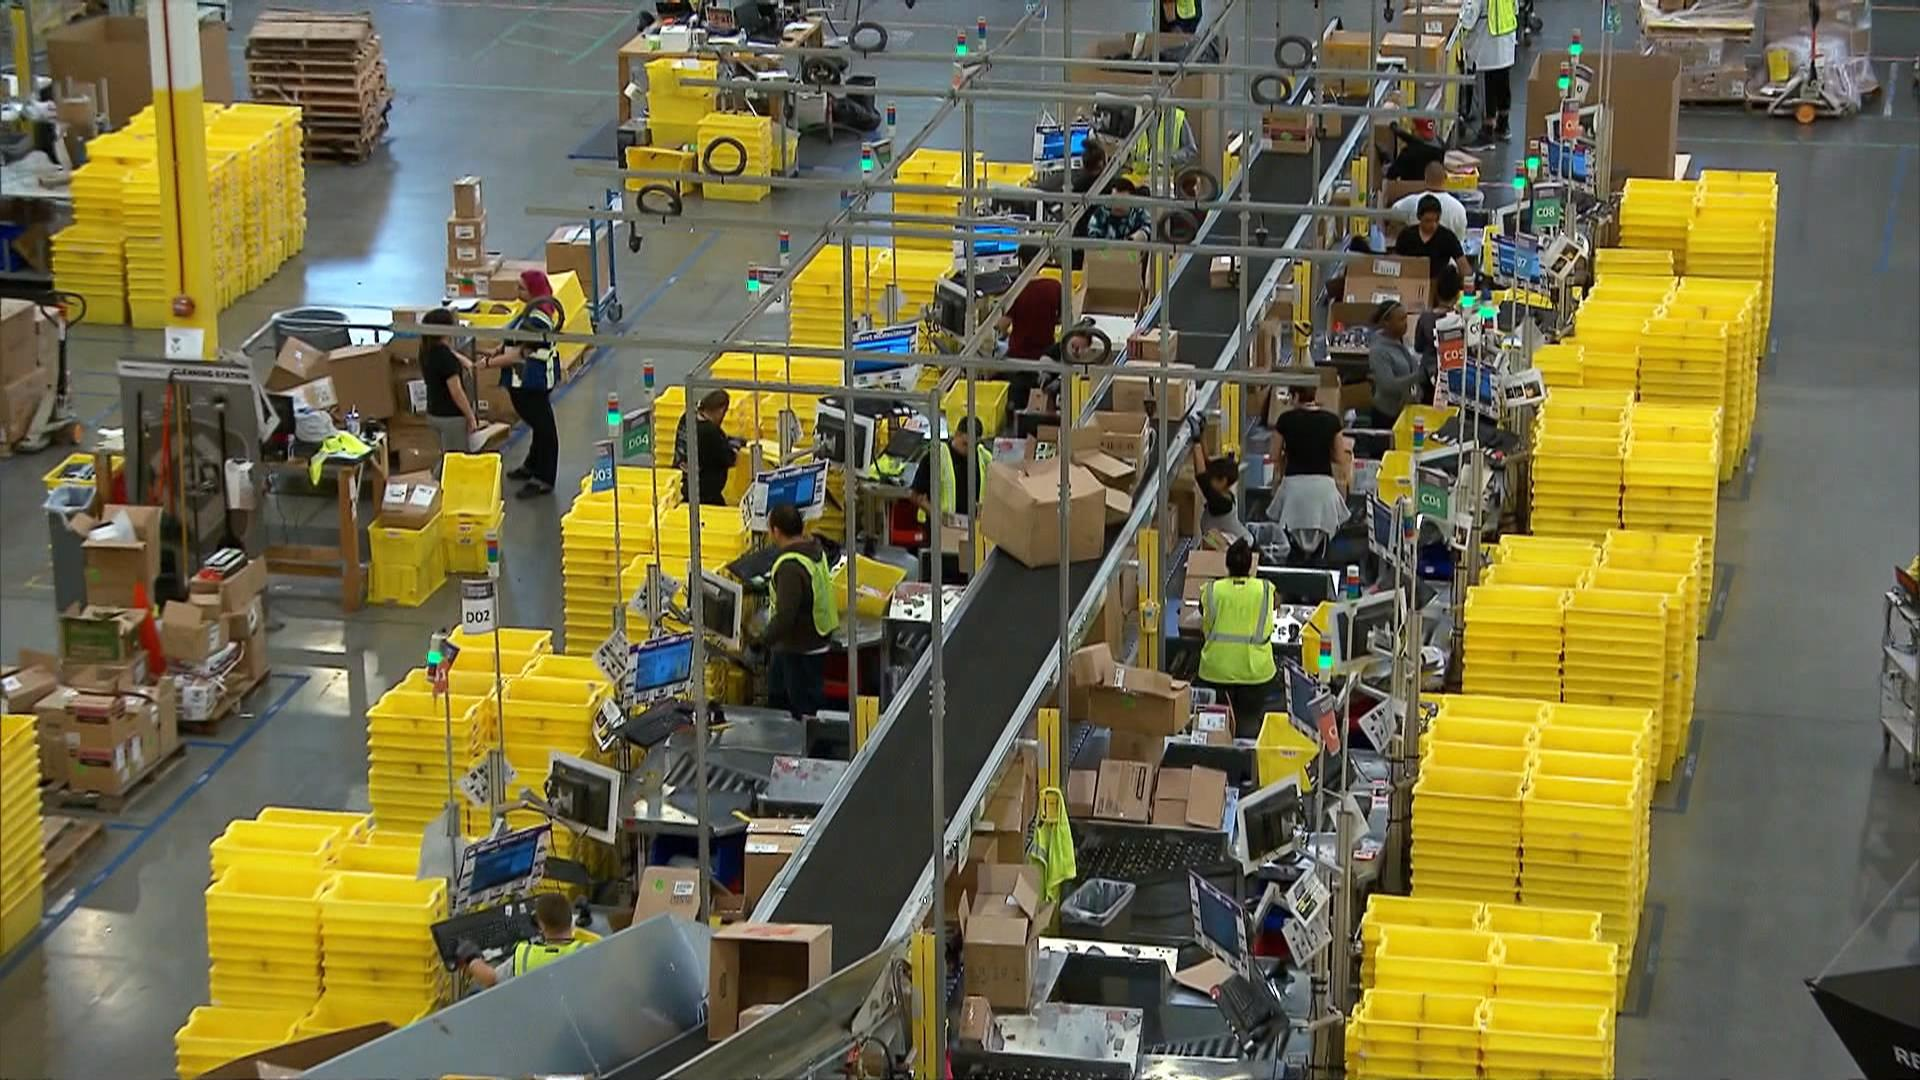 Fulfillment Center Warehouse Jobs Give New Life to Sleepy Towns